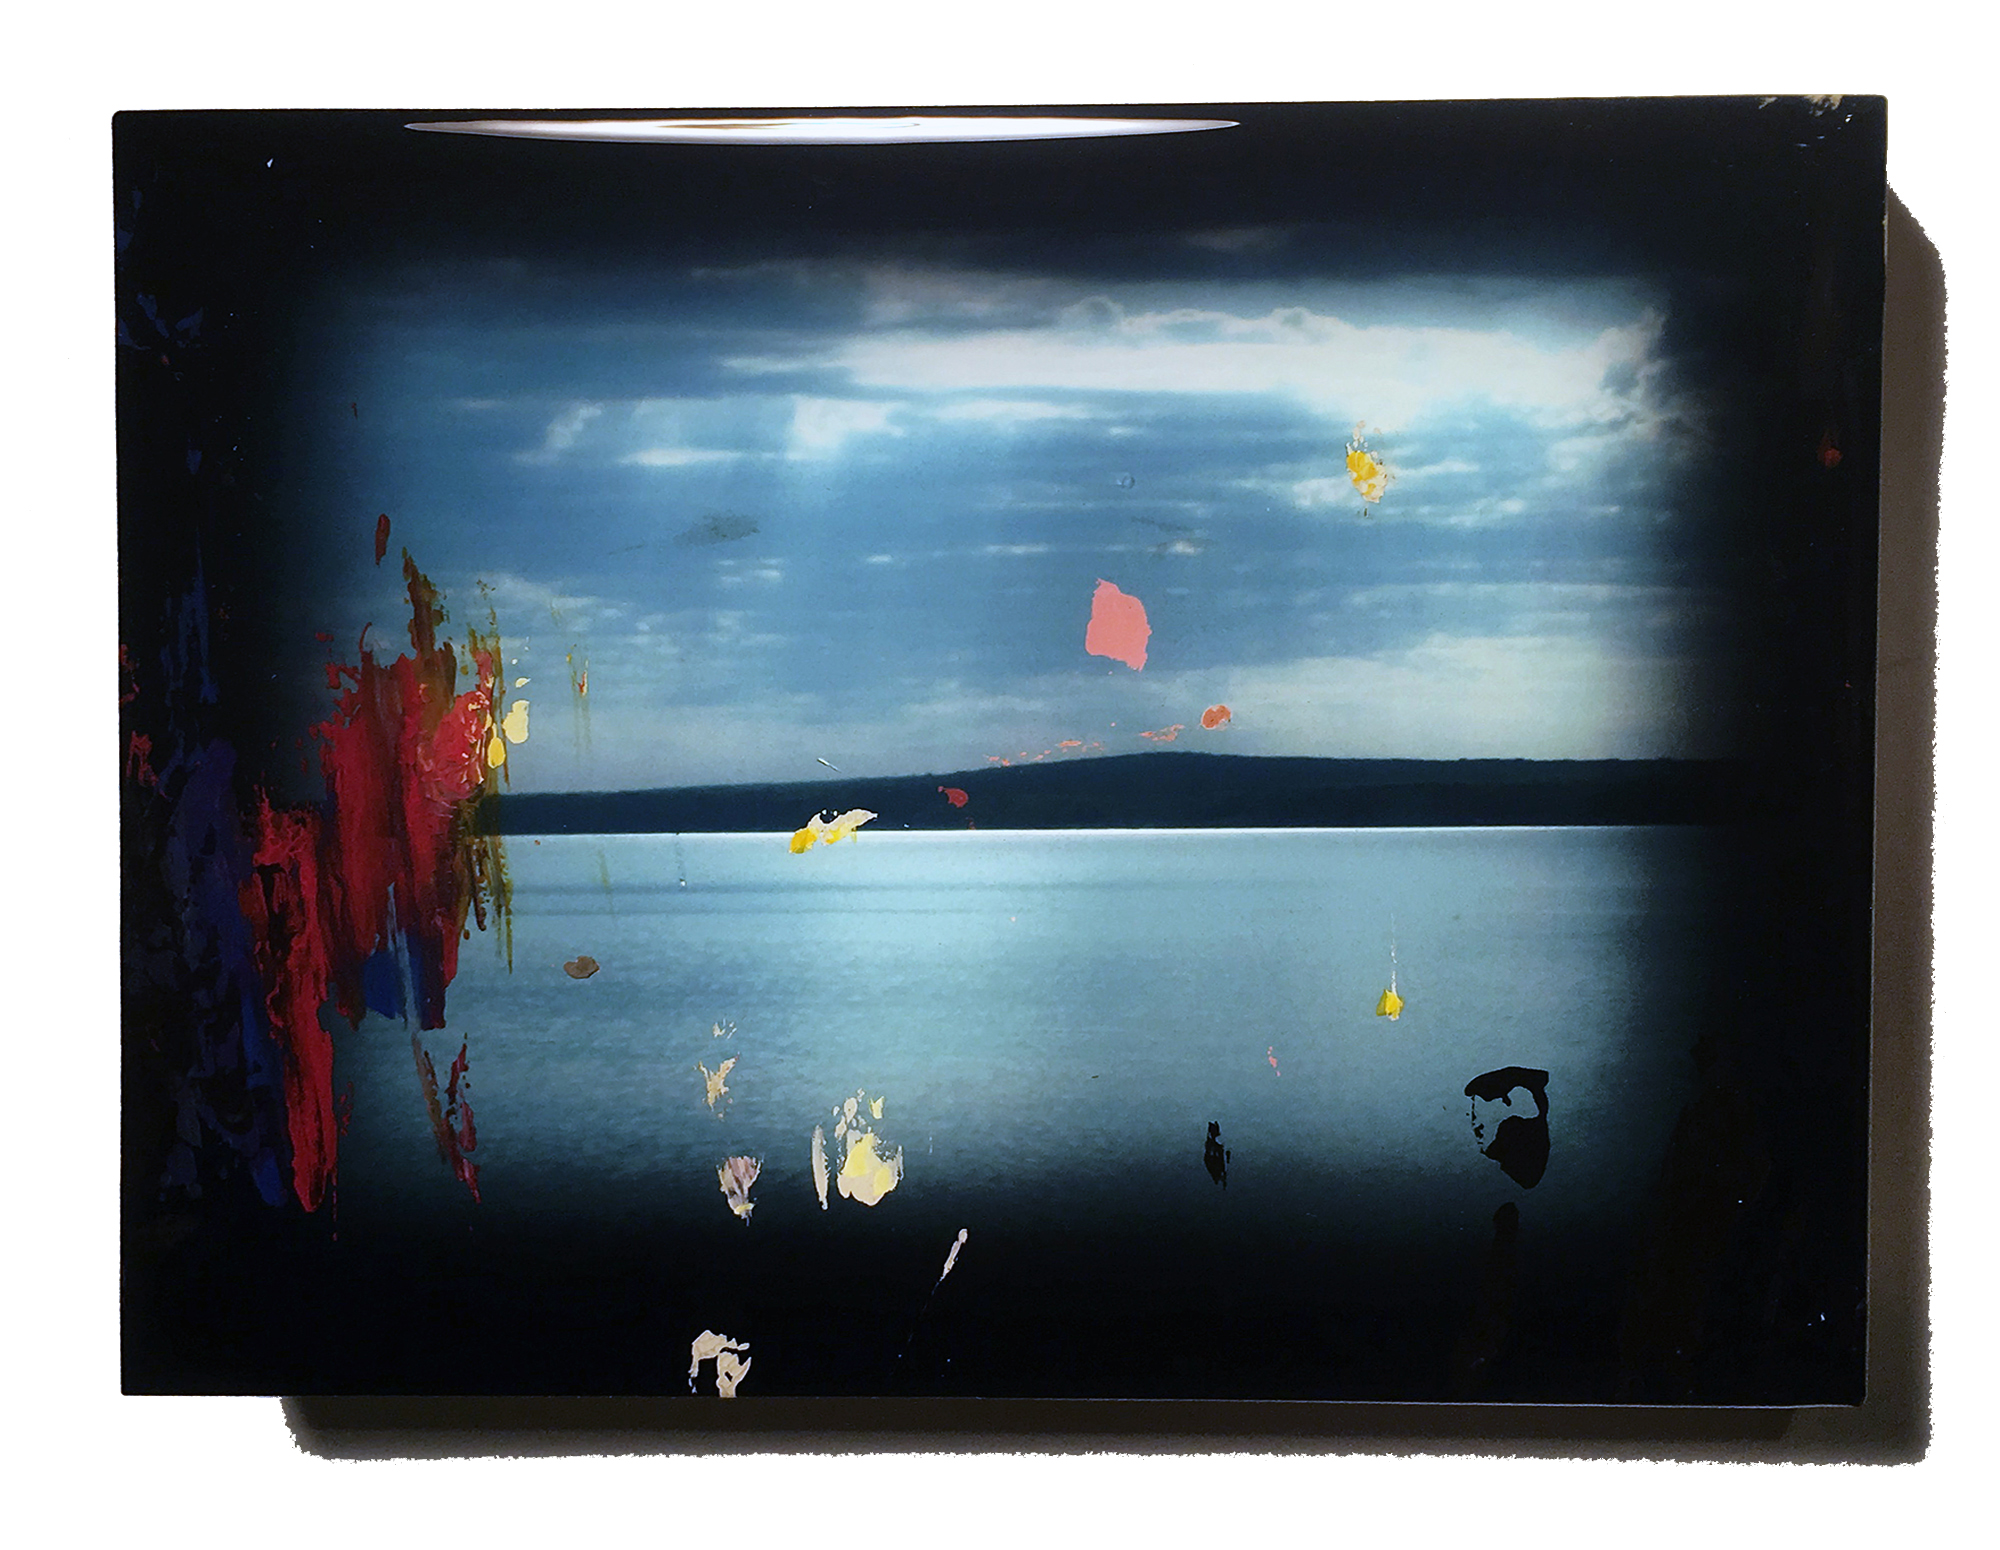 Keewanaw_Bay_Mock-up  Acrylic, Photo print, MDF, and UV resin 6 x 8 x 1.5in / 15 x 20 x 4 cm